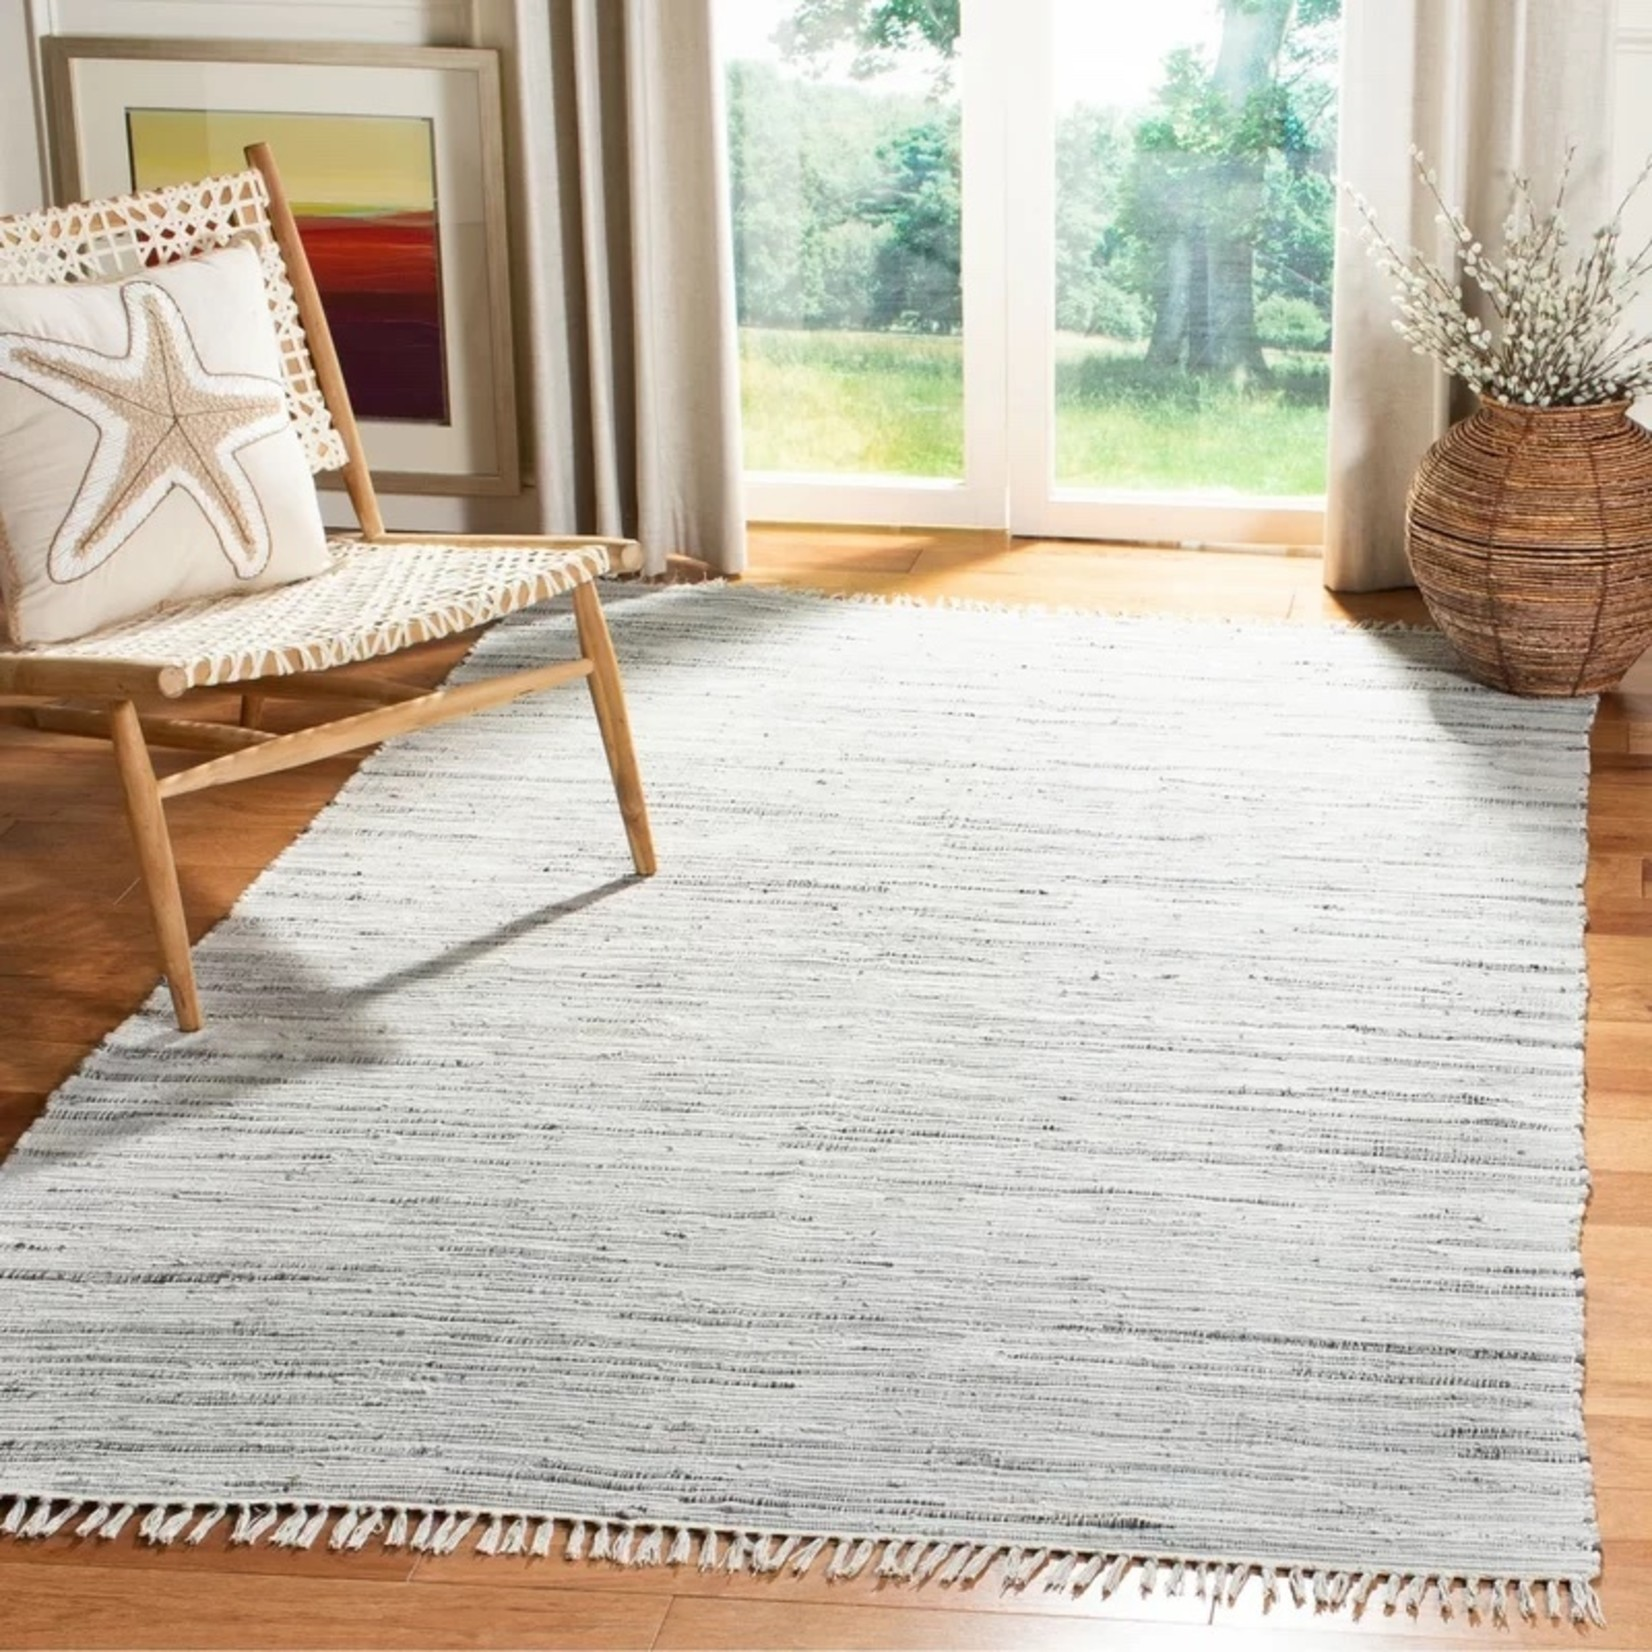 * 6' x 9' - Wincanton Abstract Hand-Knotted Cotton Gray Area Rug